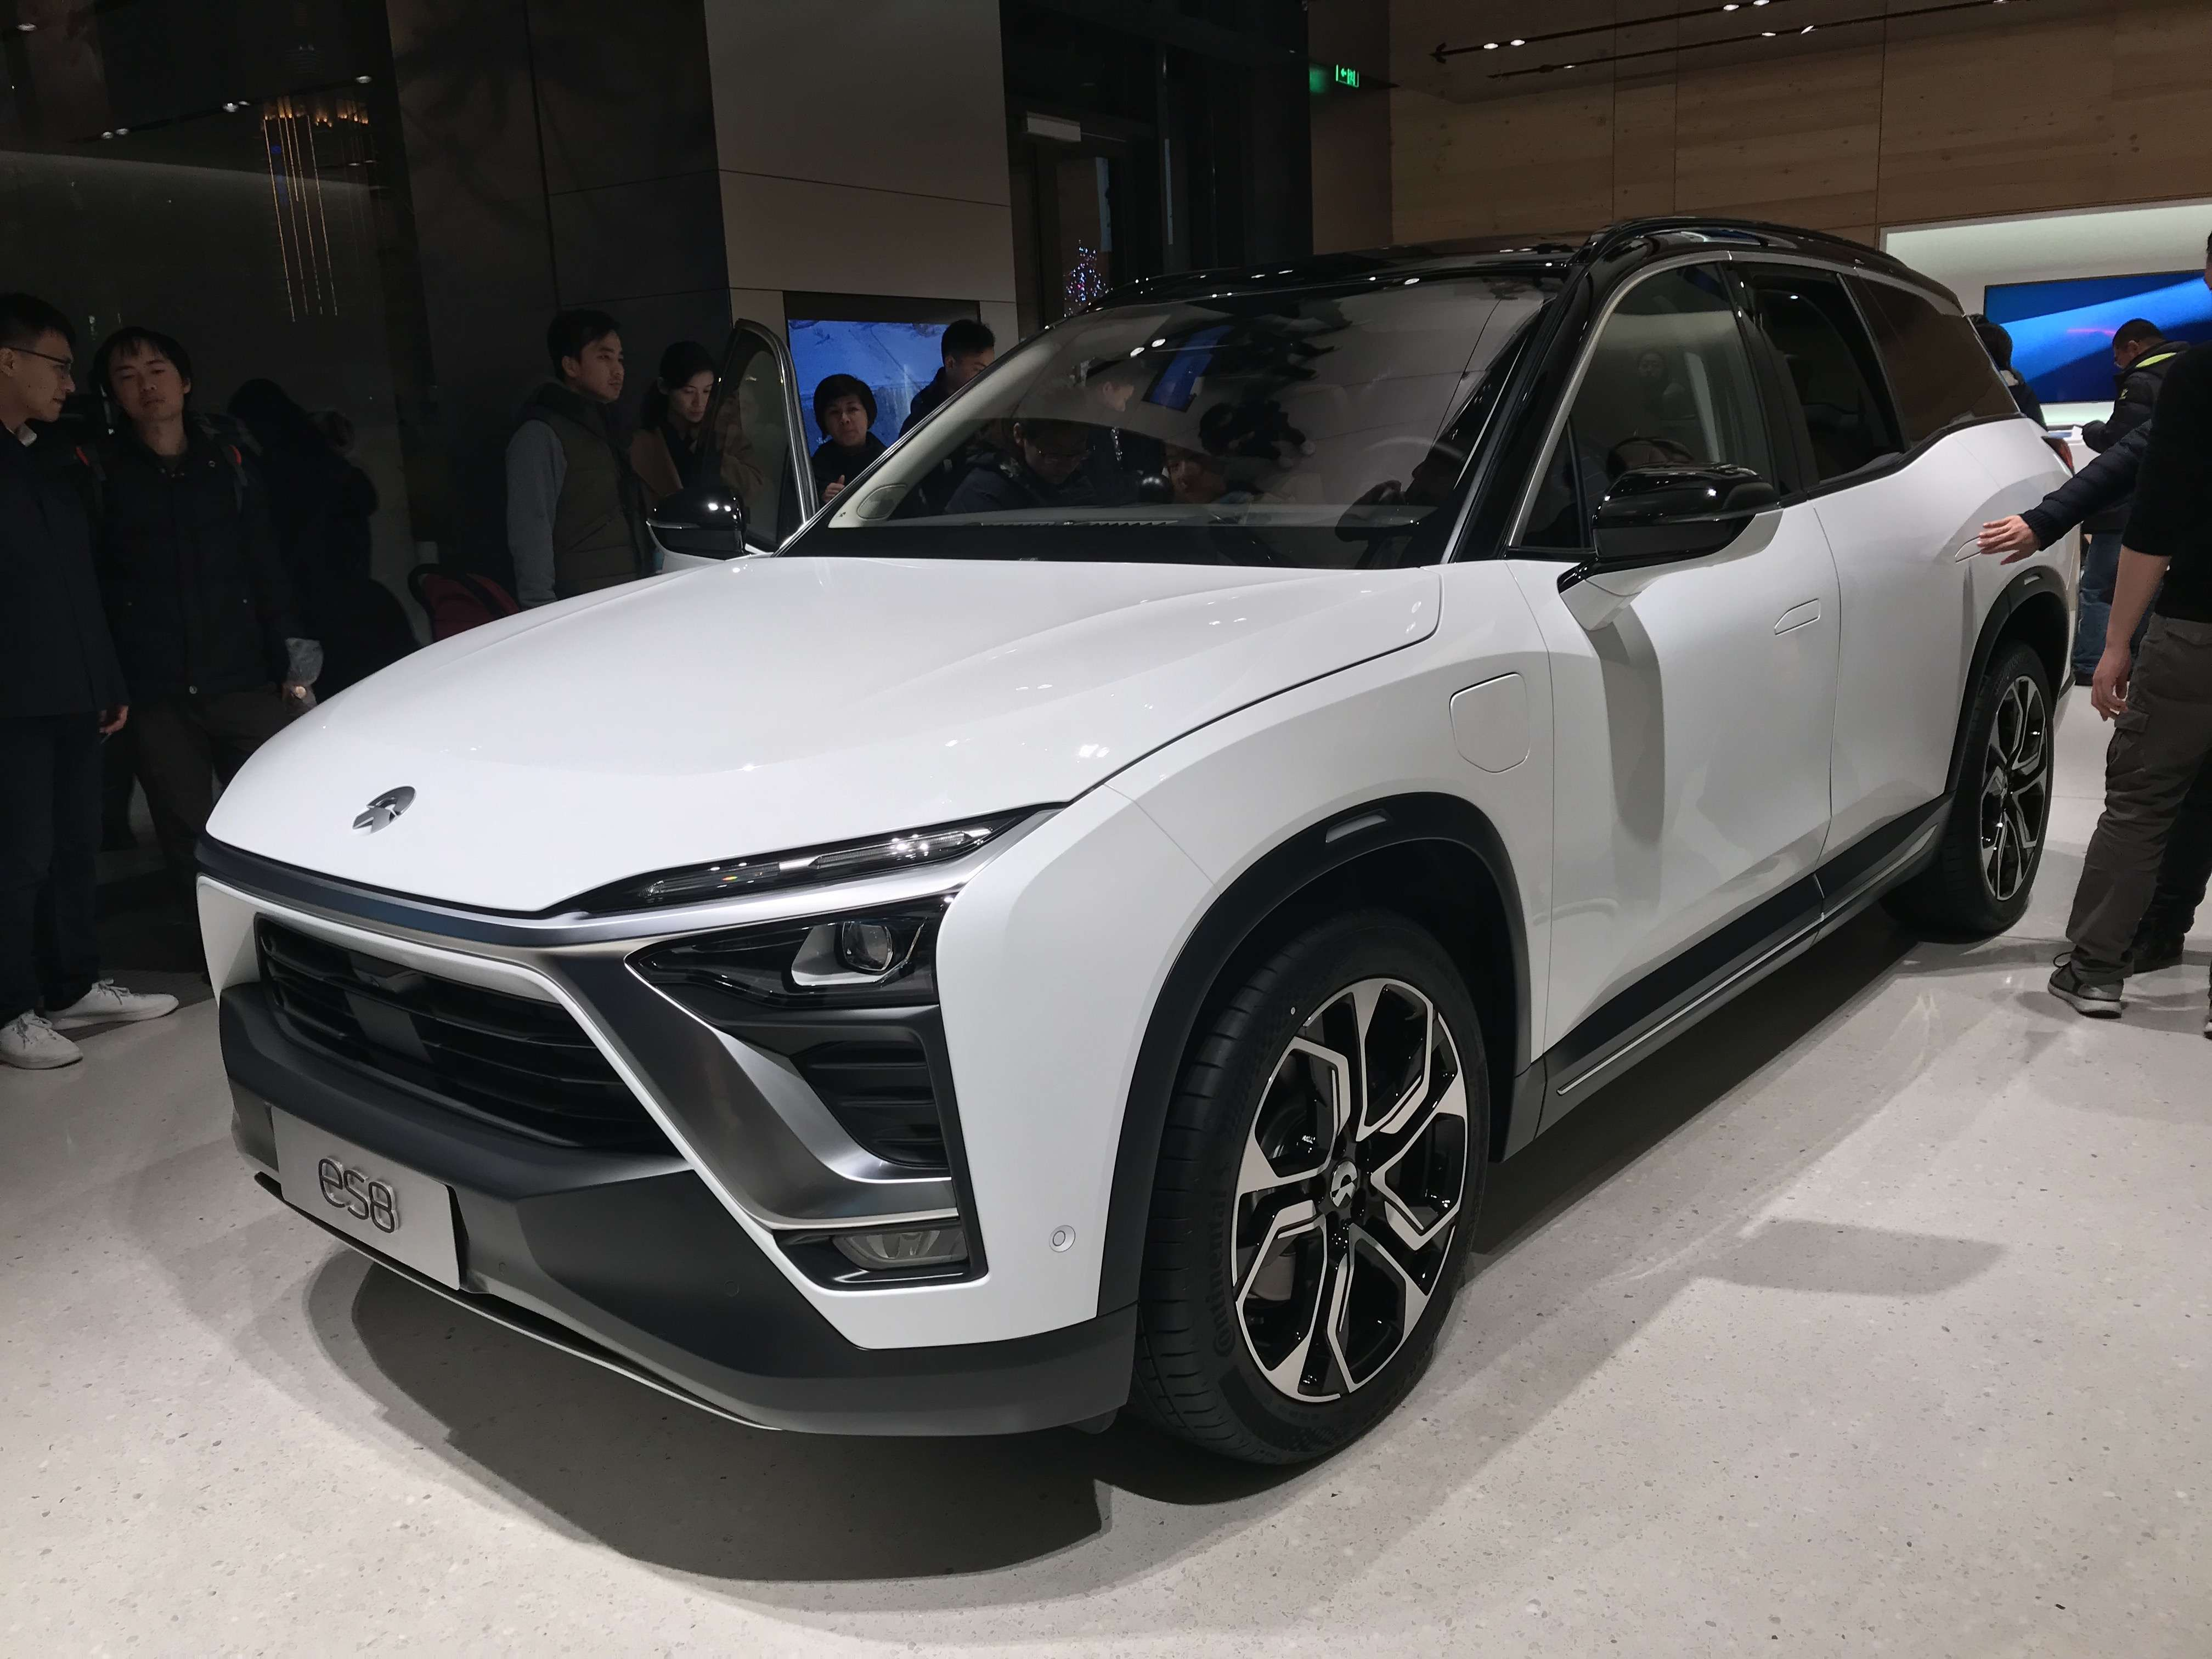 The Chinese-made Nio ES8 electric vehicle. (Image Credit: Jengtingchen/Wikimedia Commons)